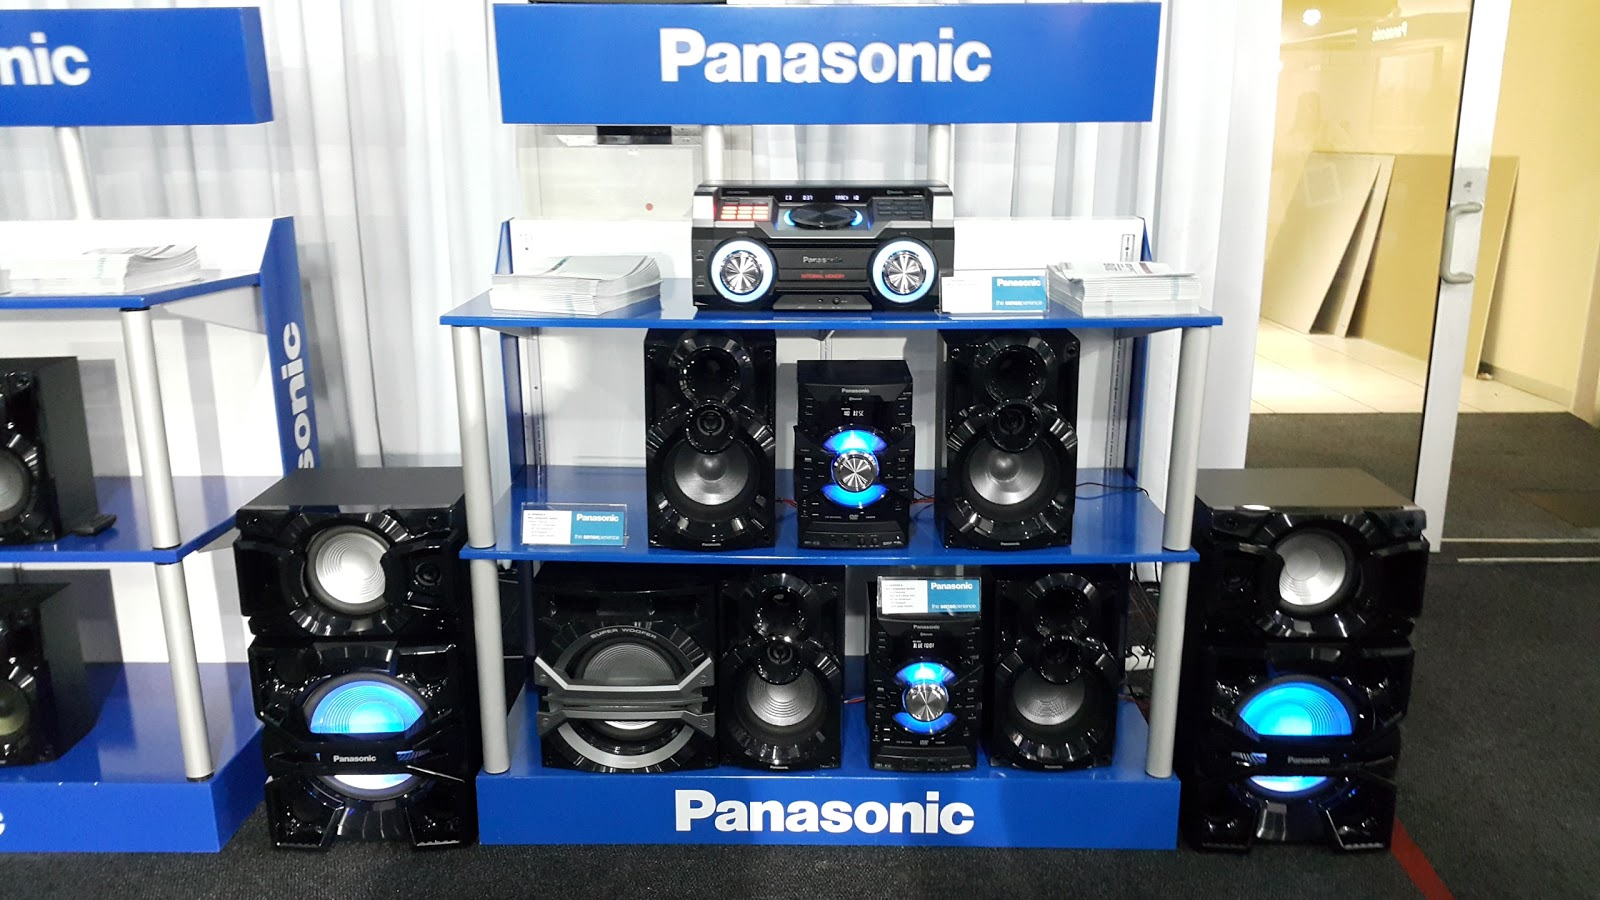 Panasonic speakers and entertainment system